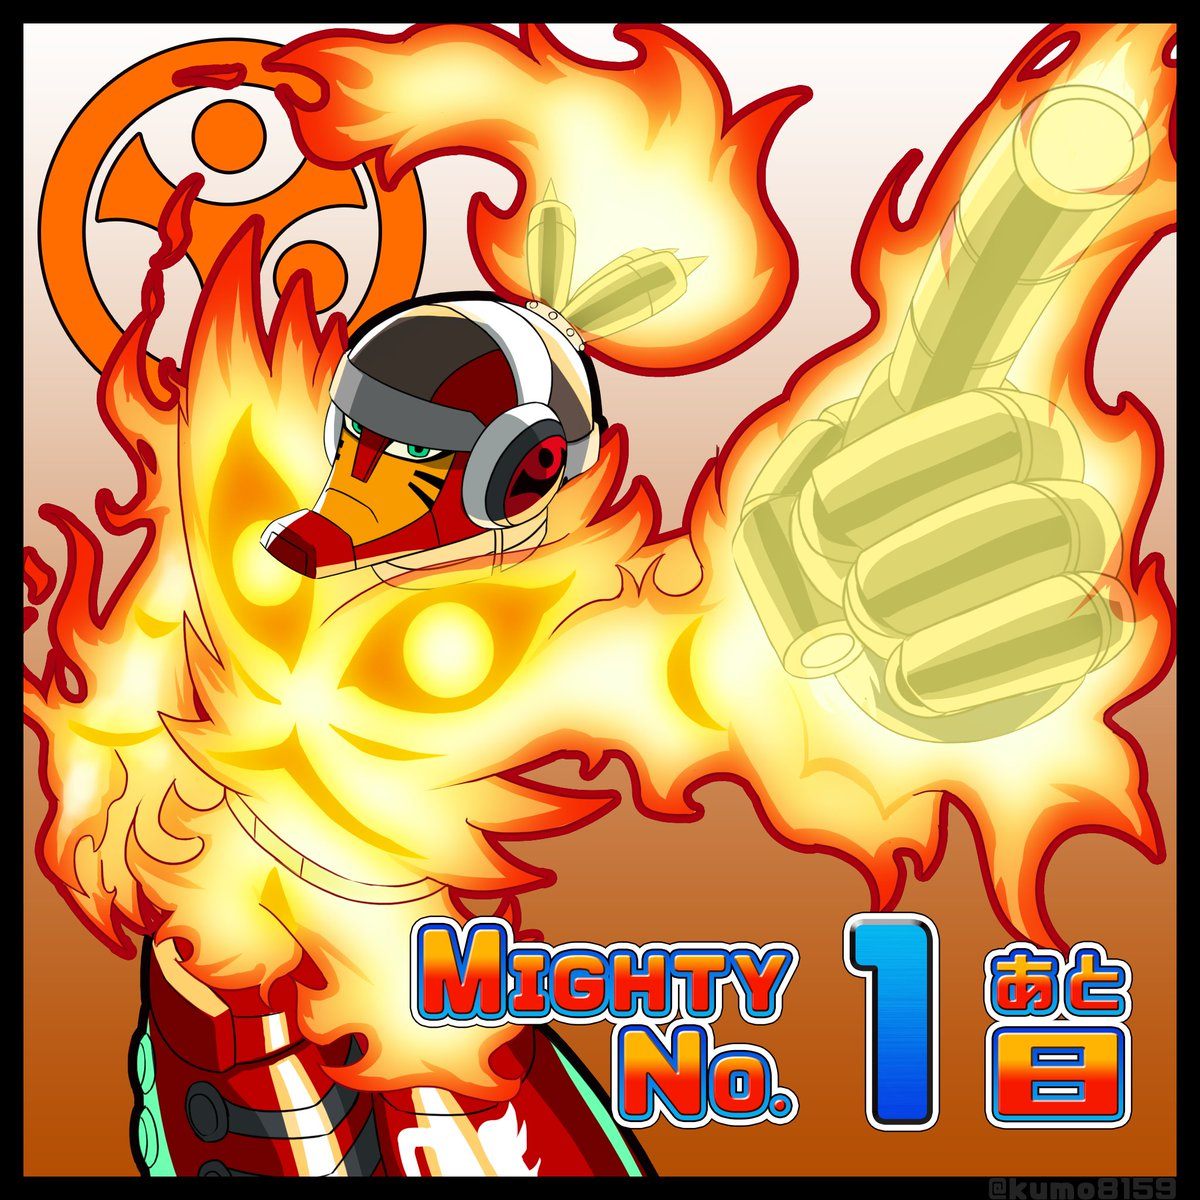 Mighty No.9発売まで! #MightyNo9 https://t.co/PHk2K8NYjb